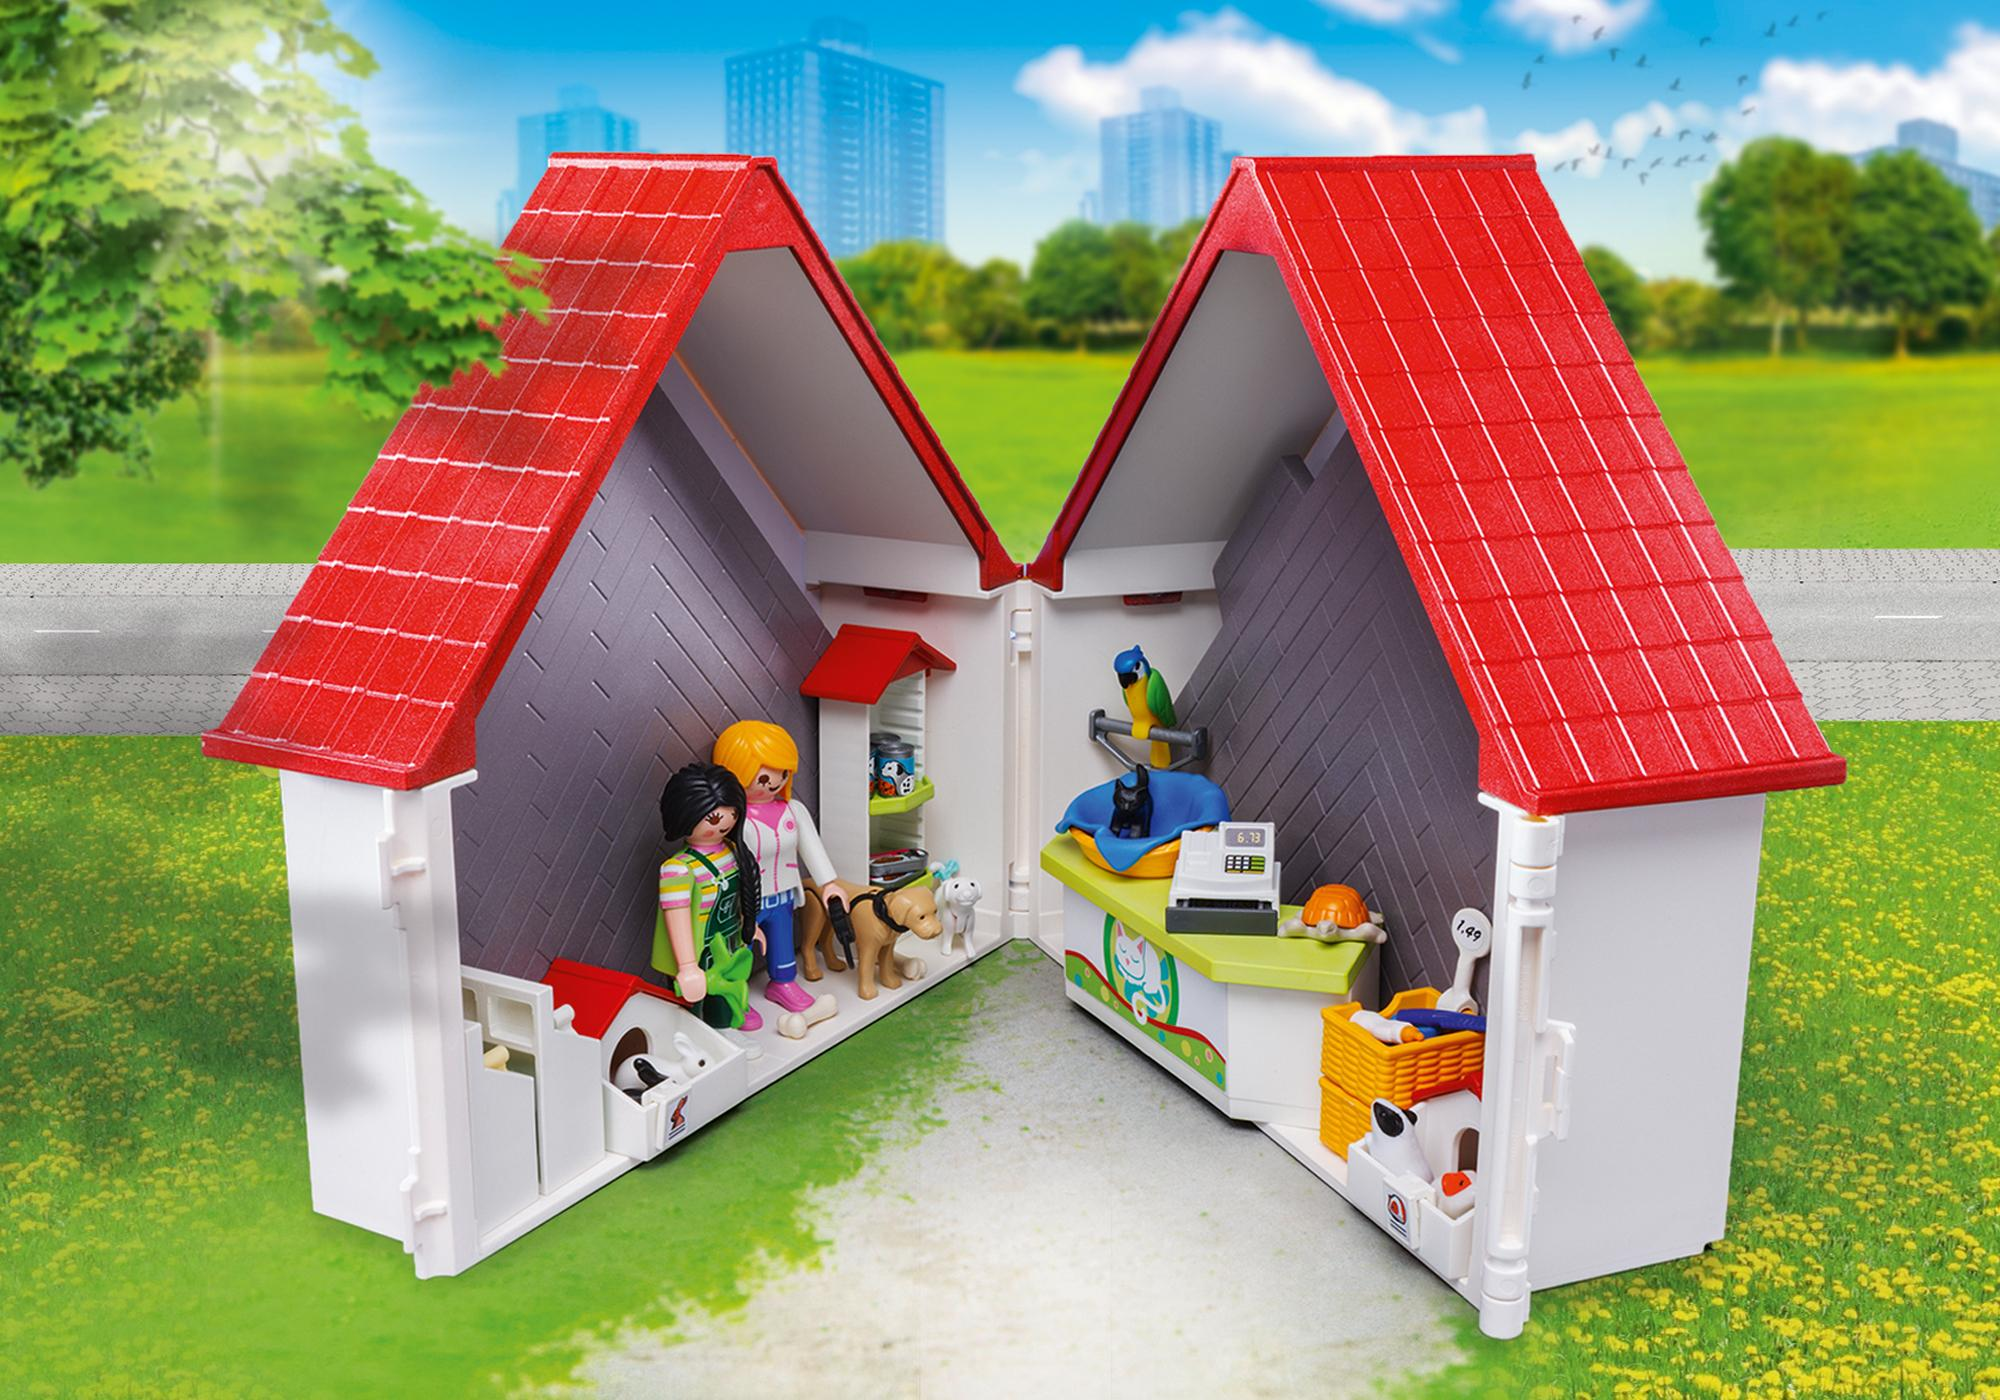 http://media.playmobil.com/i/playmobil/5672_product_extra2